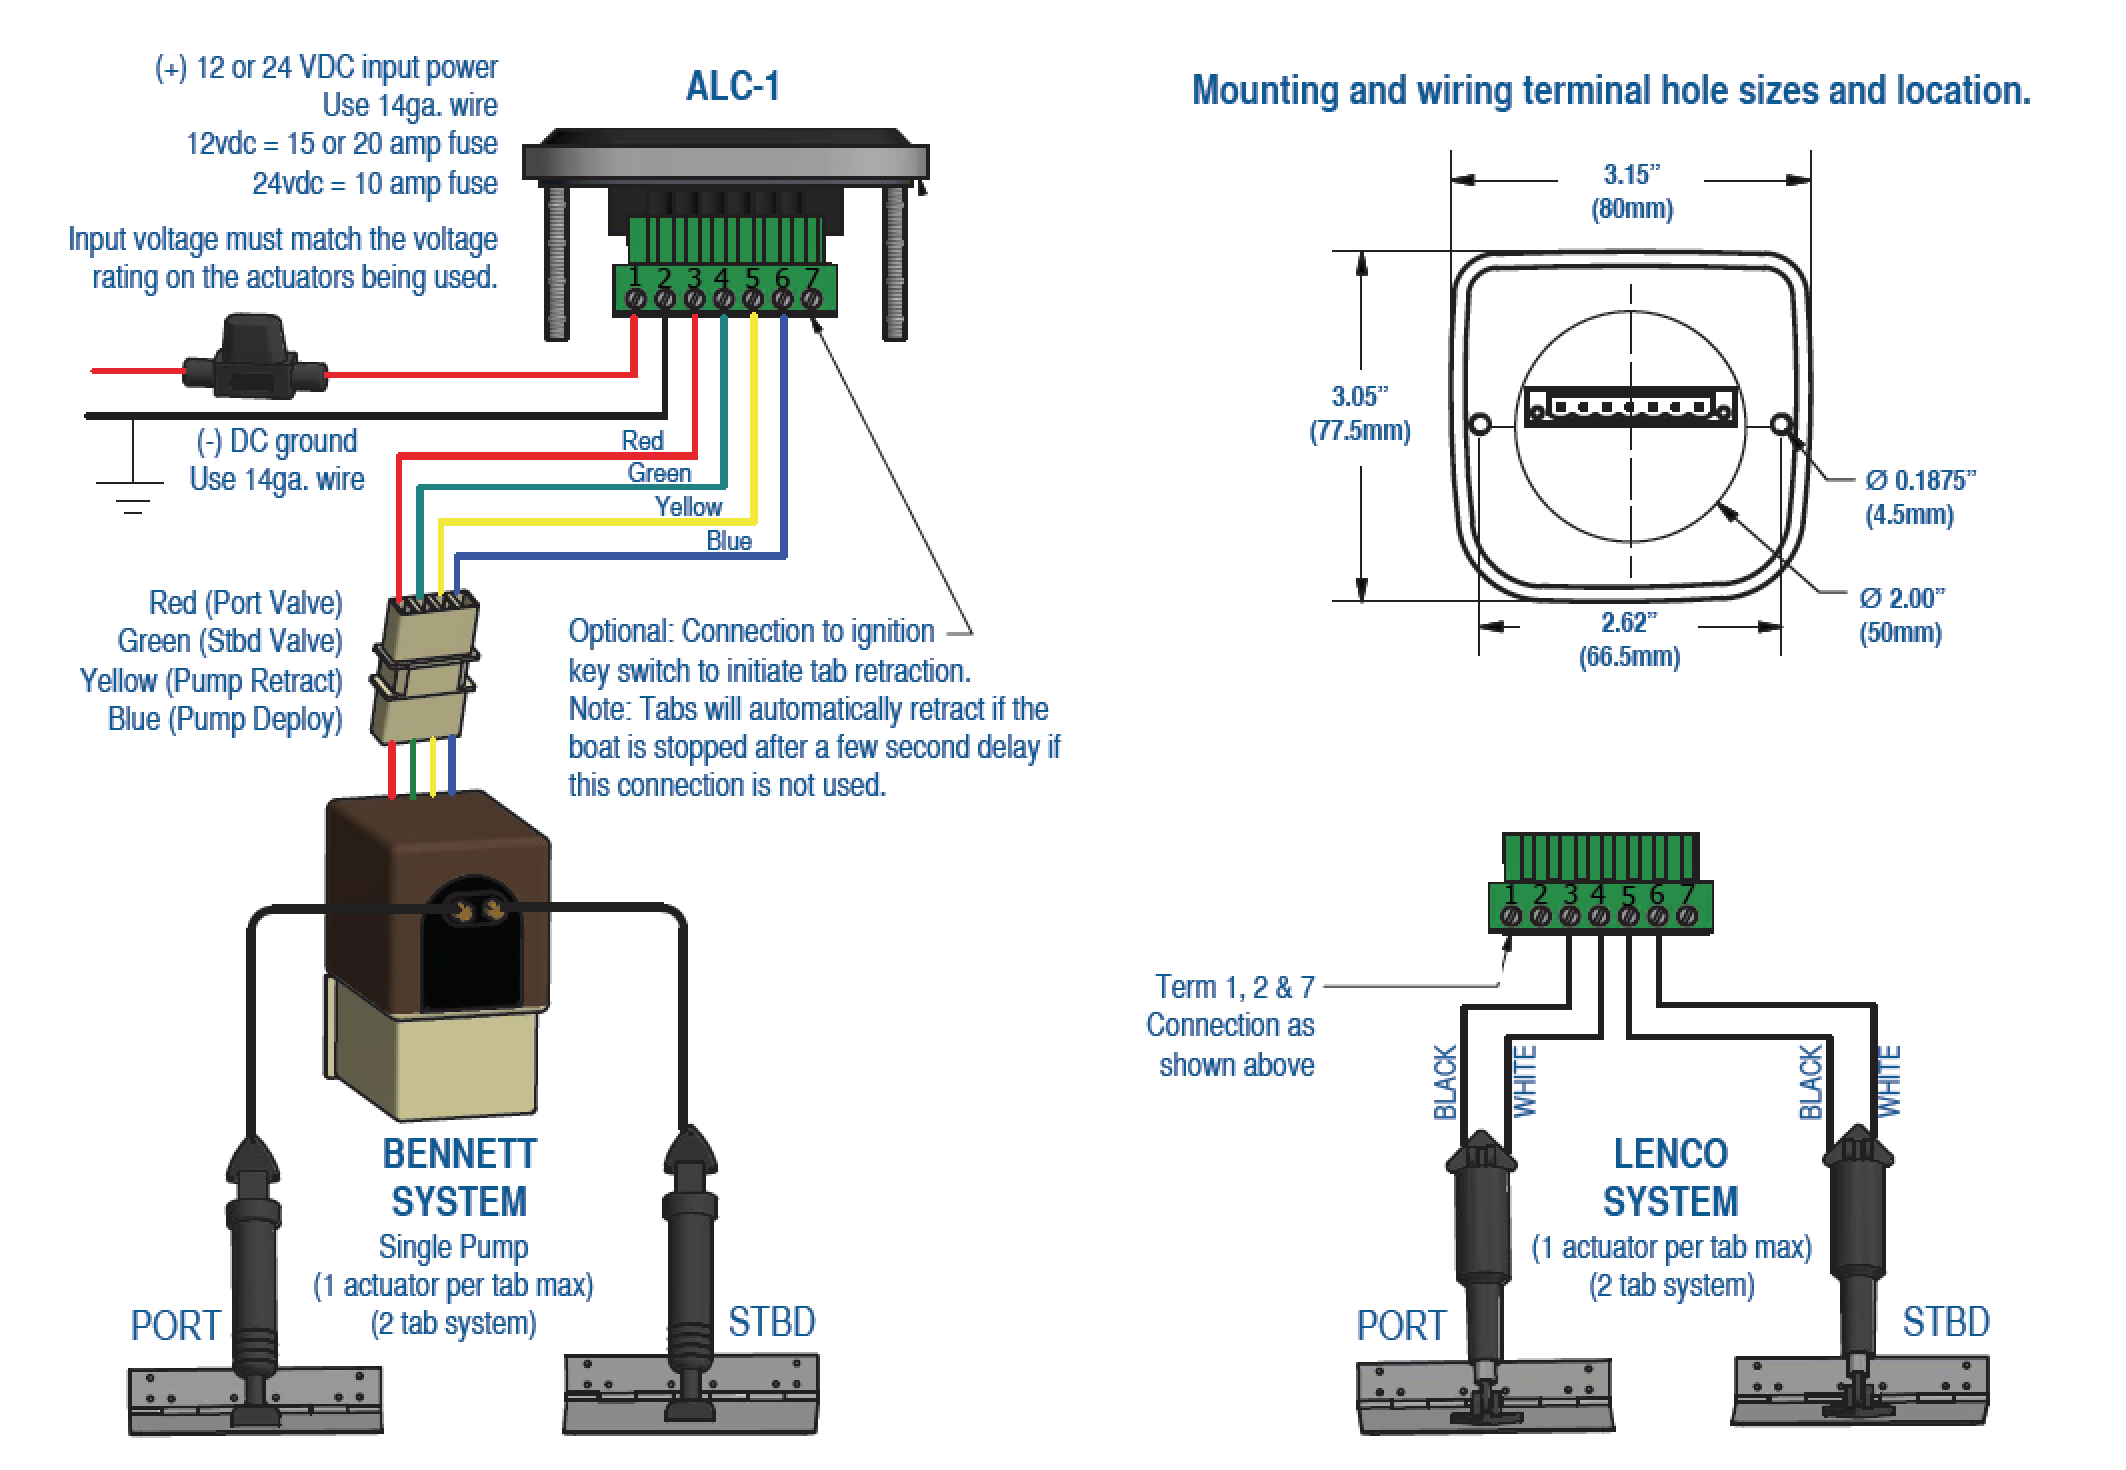 alc bennet lenco systems automatic level control for lenco and bennett products bennett hydraulic trim tab wiring diagram at panicattacktreatment.co